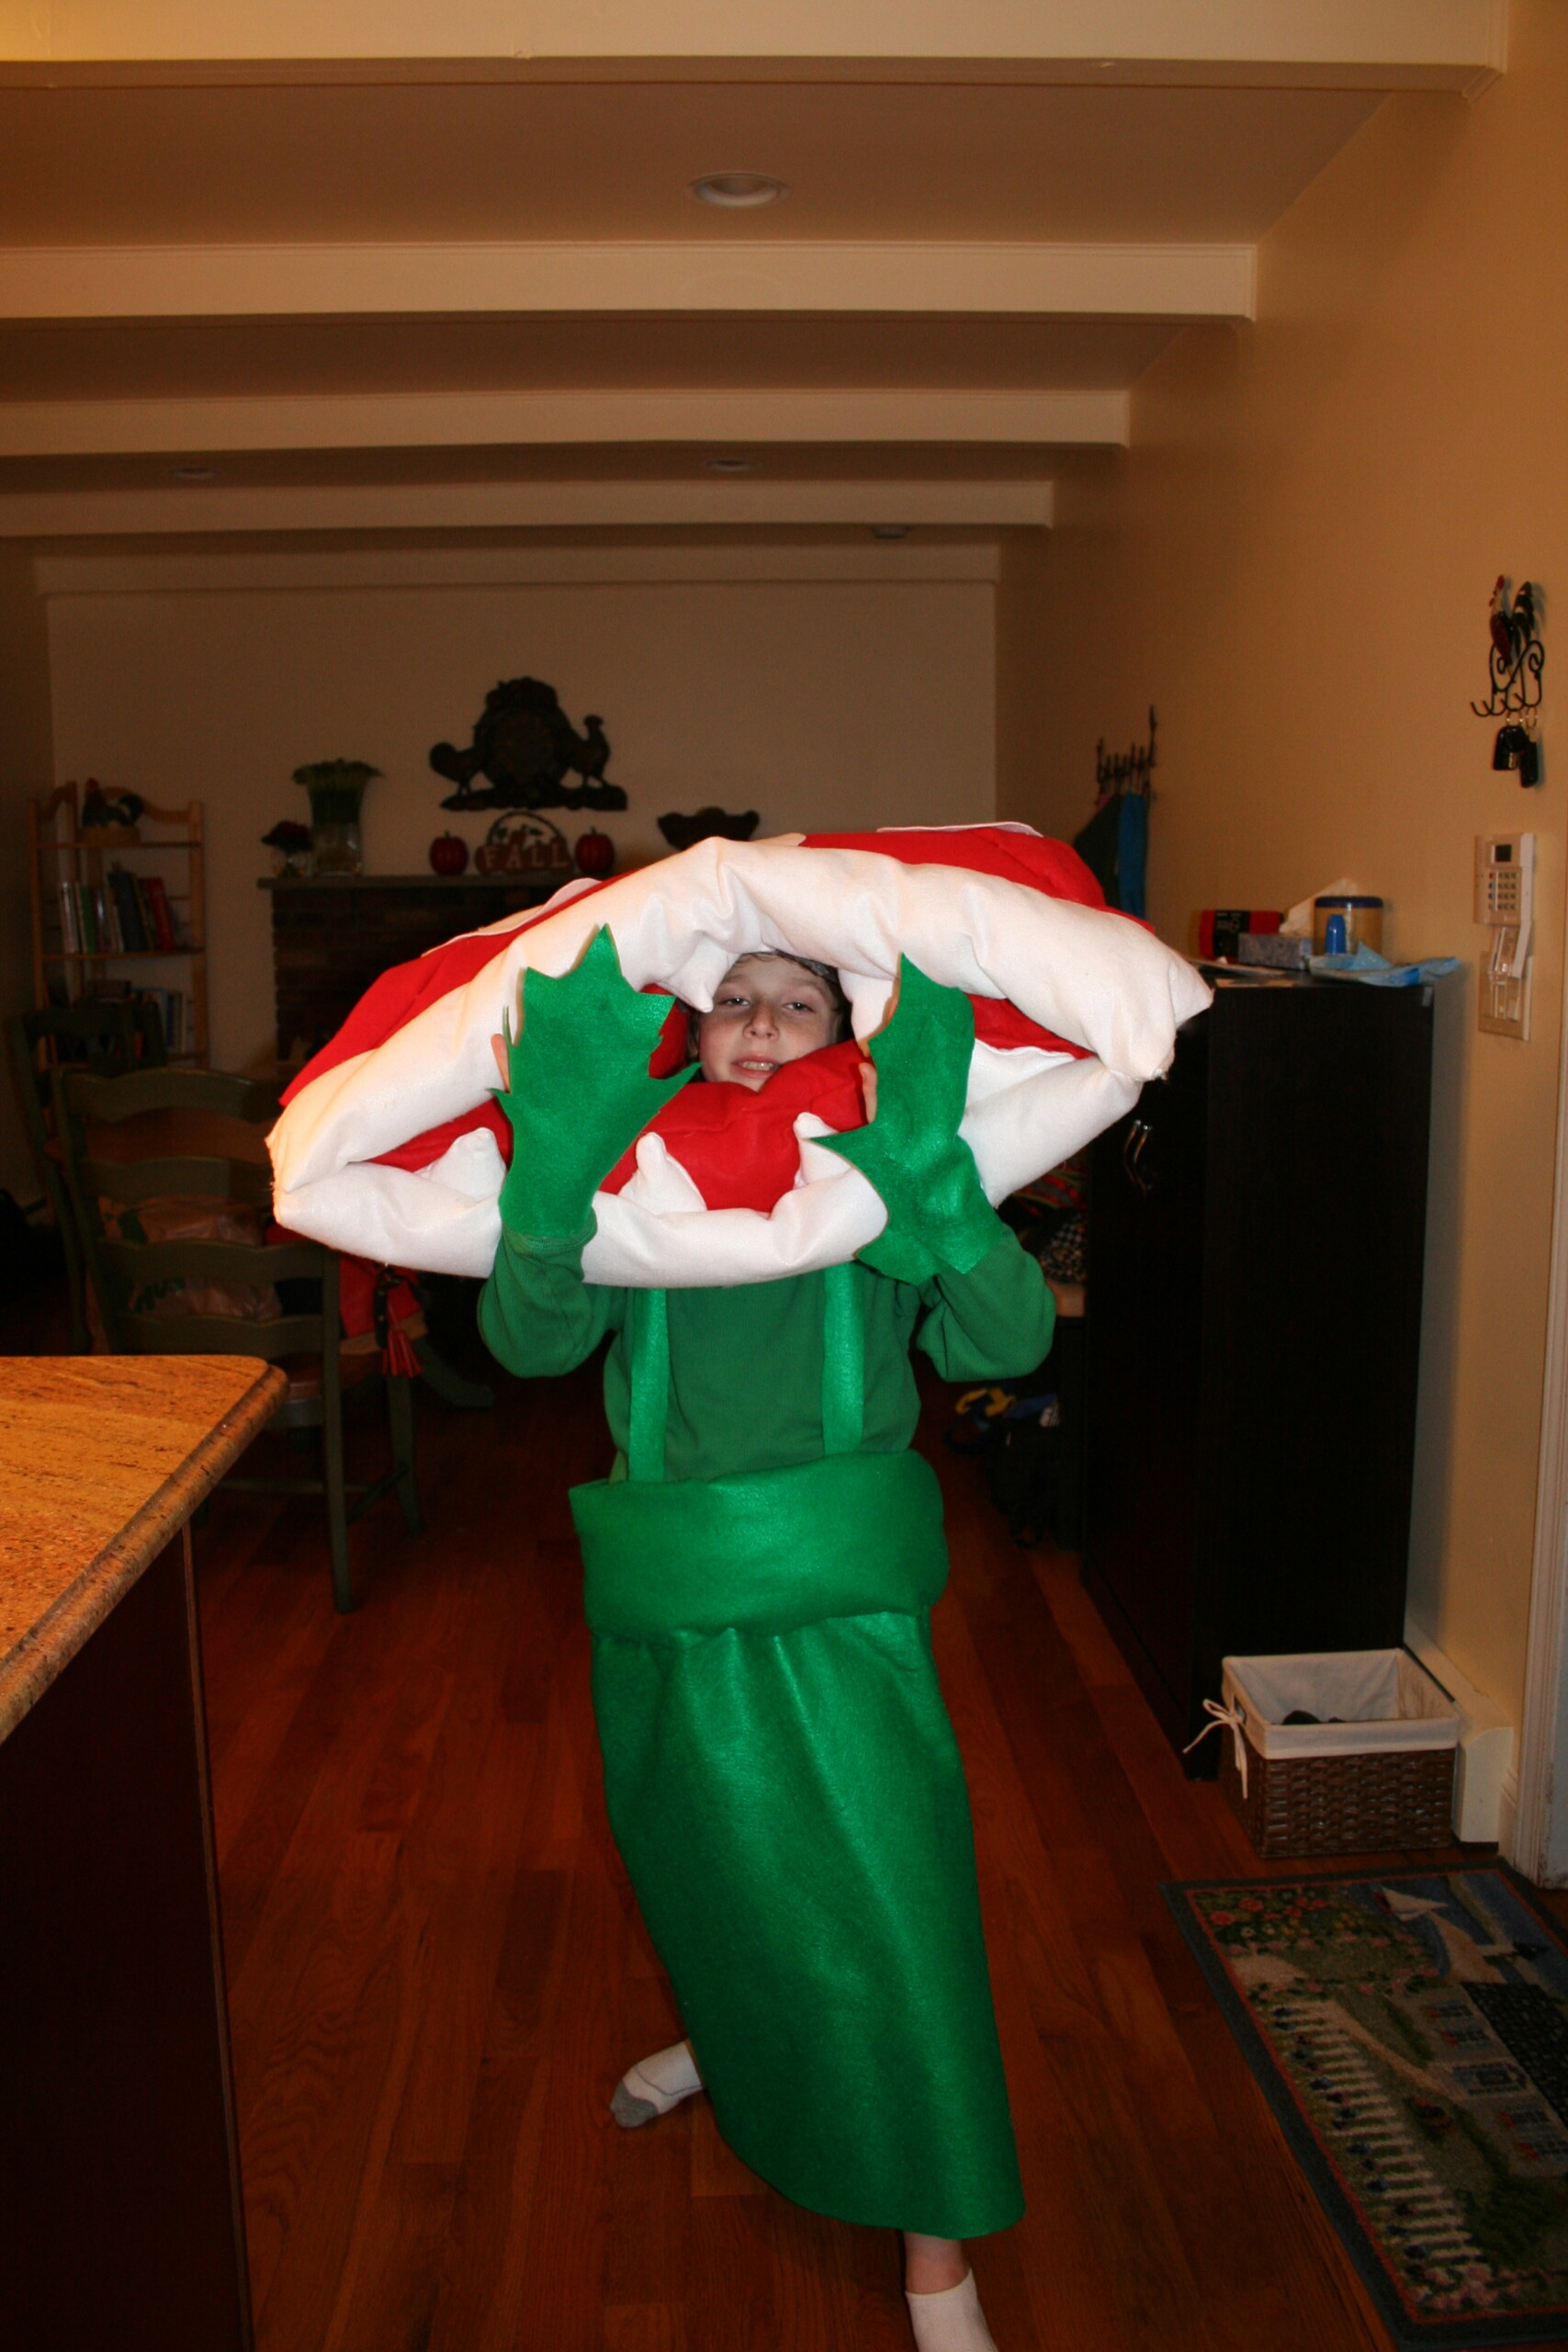 How to Make Your Very Own Super Mario Bros. Piranha Plant Costume